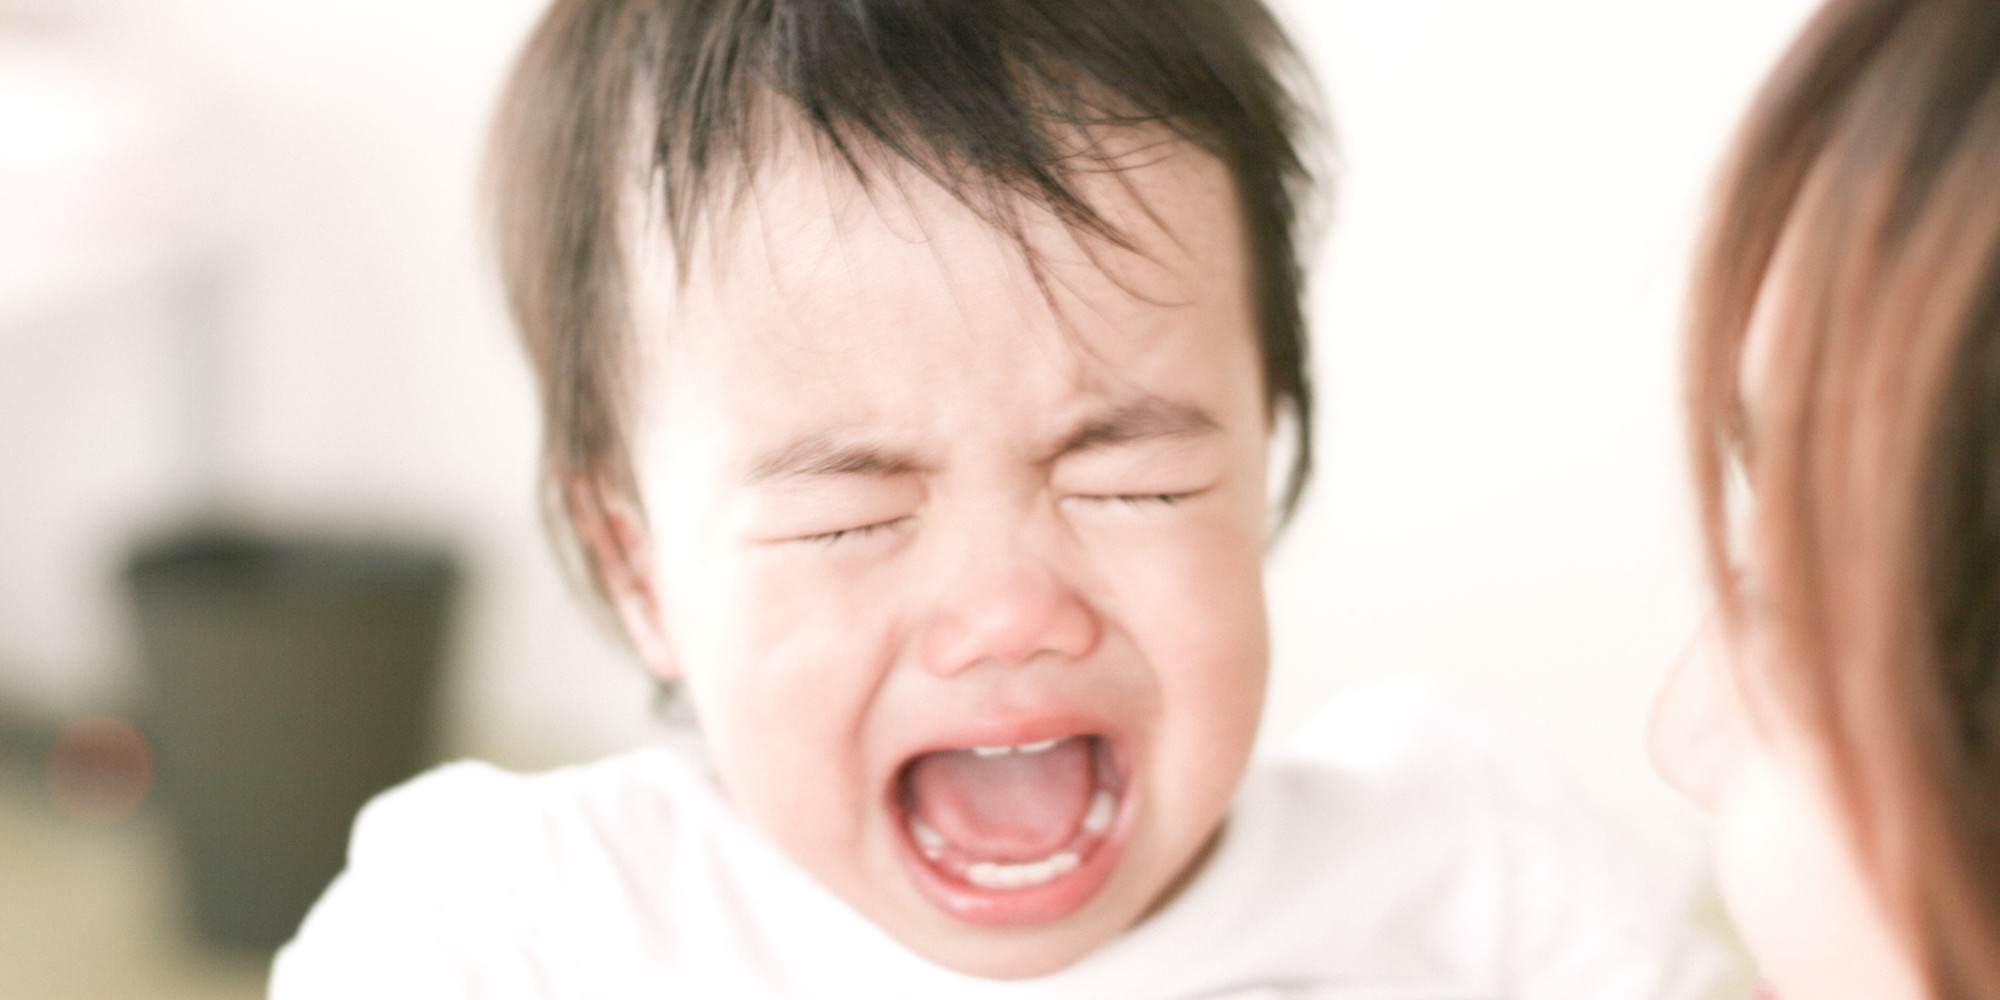 my baby's crying made me cry | huffpost